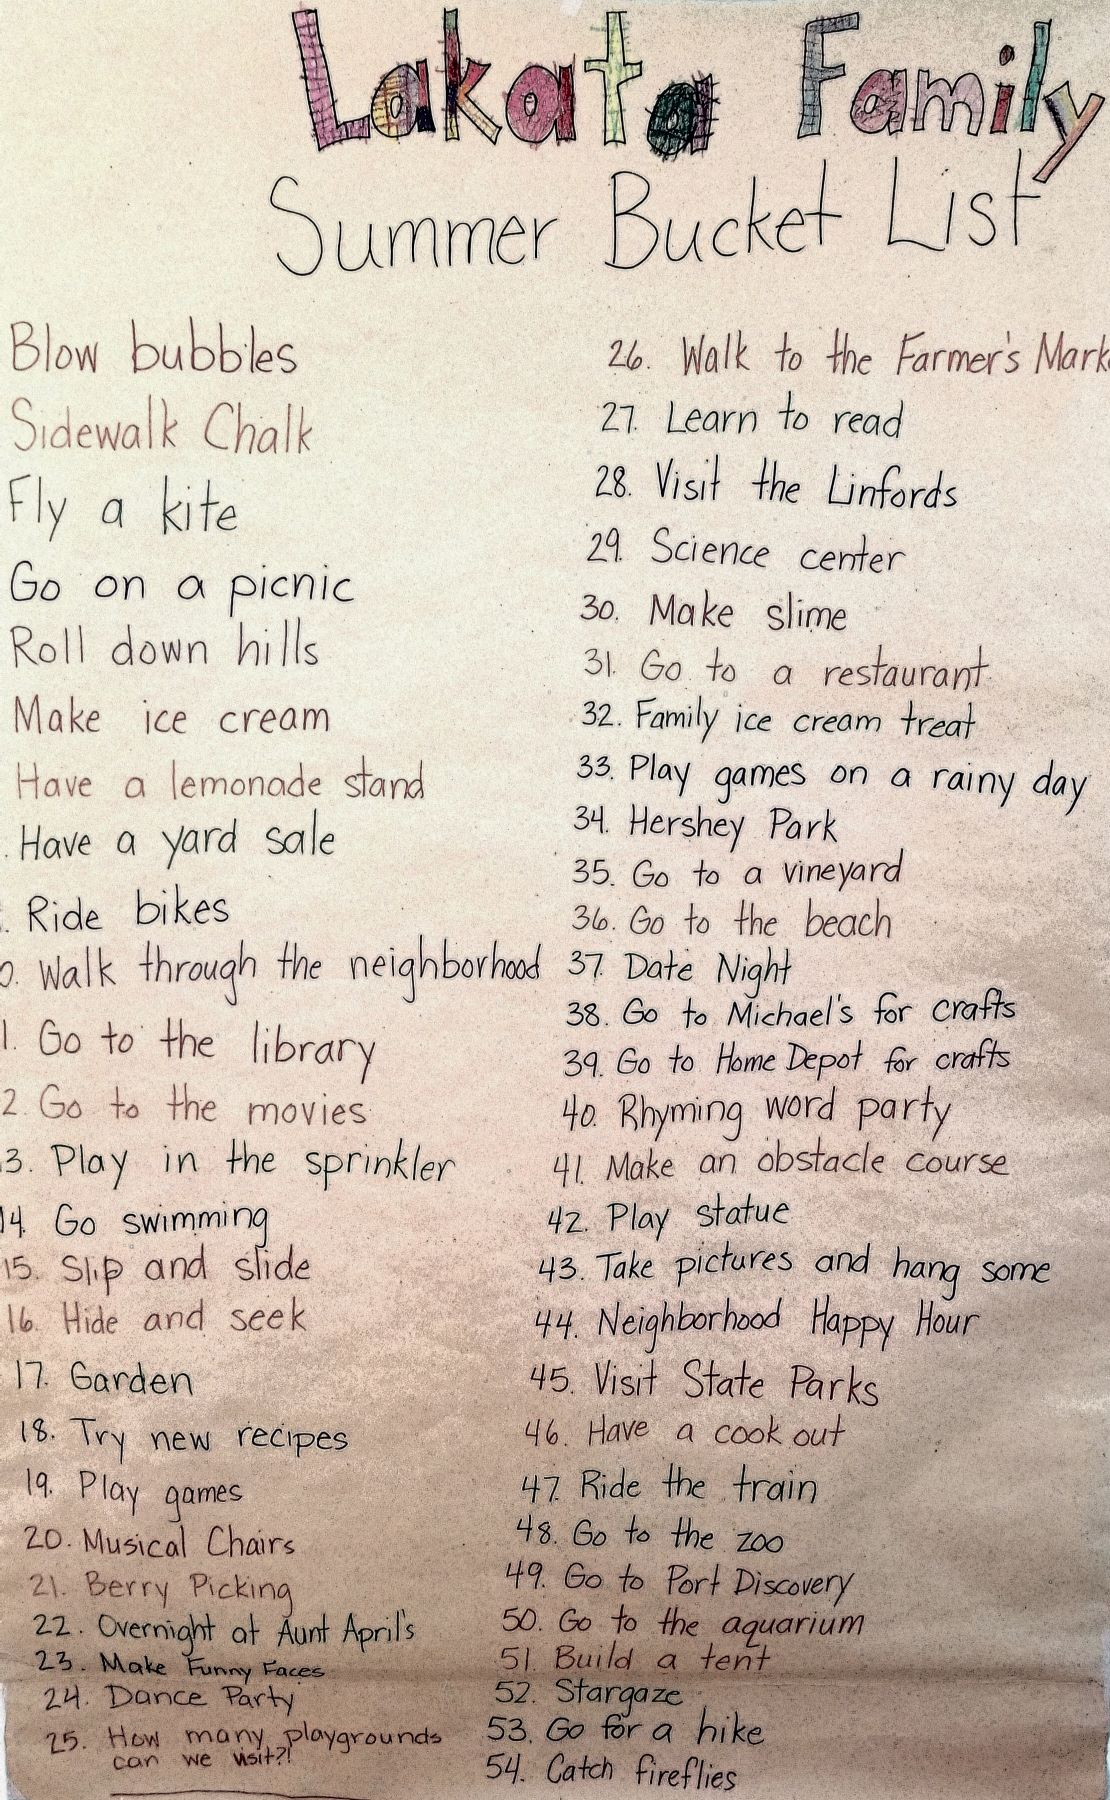 A Summer Bucket List for the Family